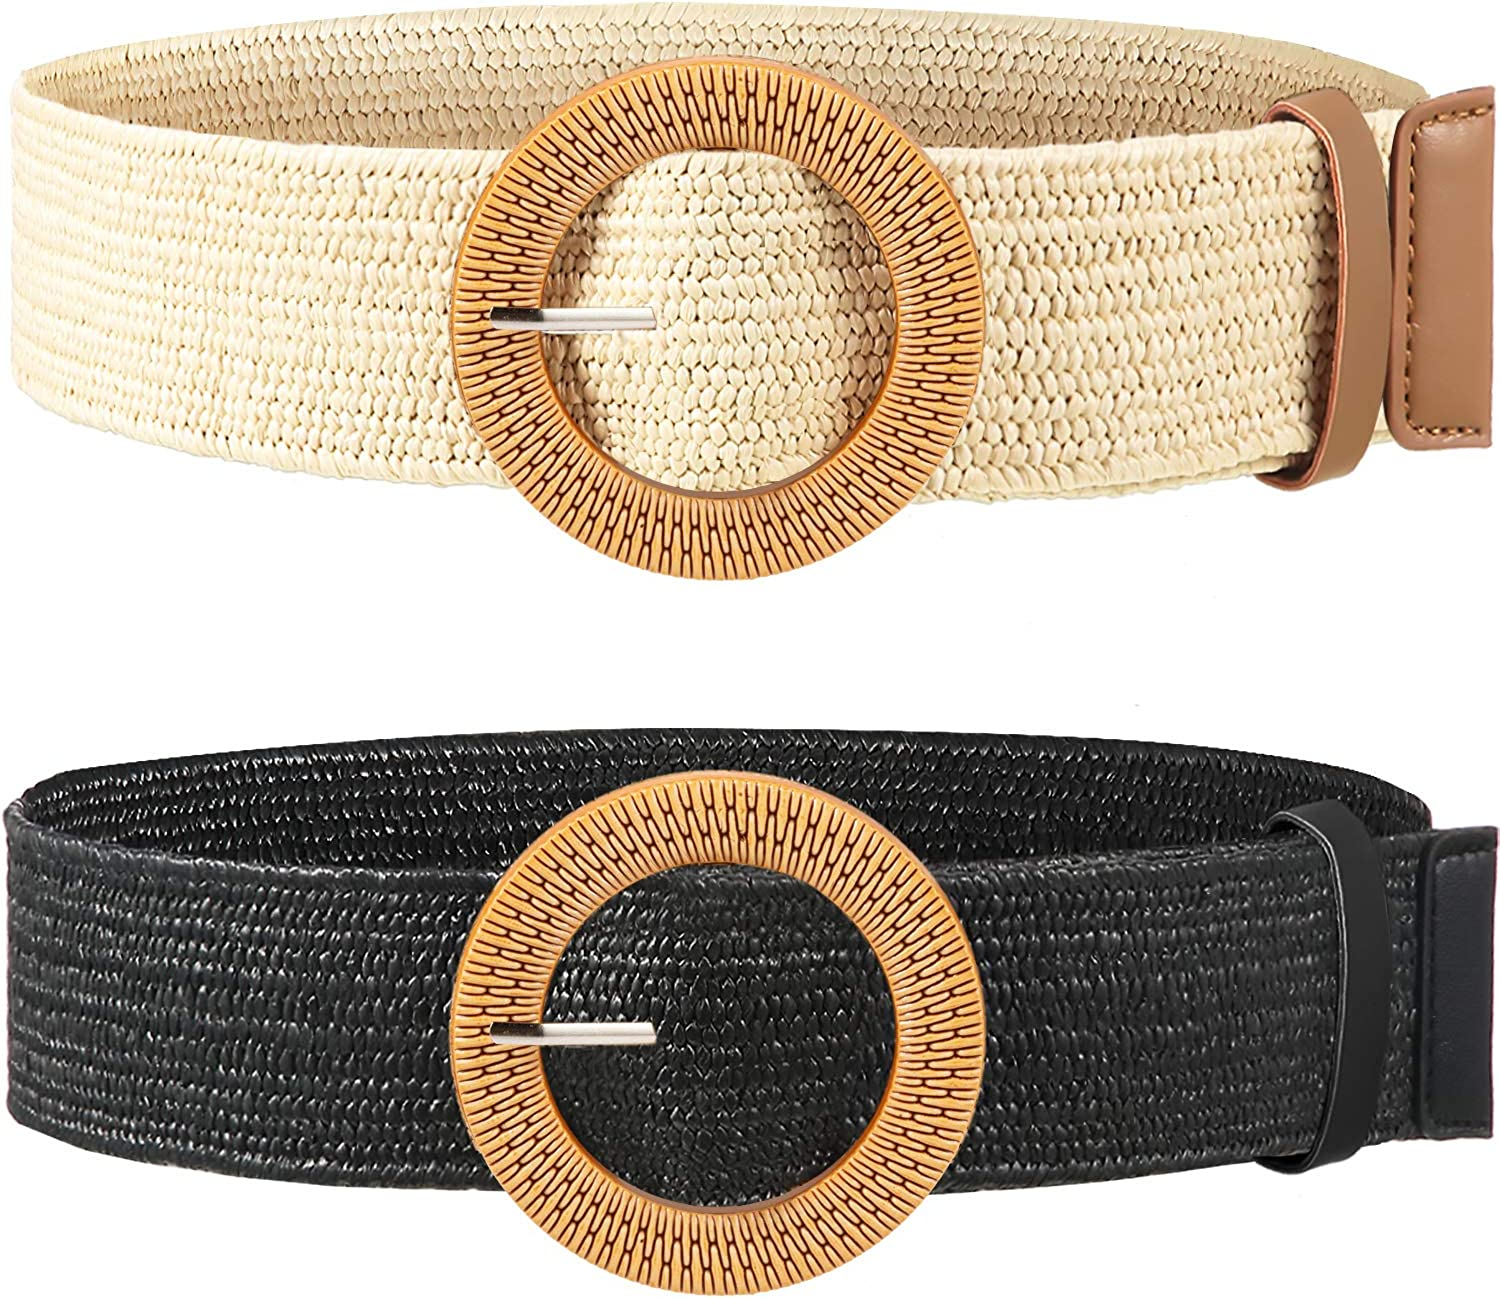 2 Pieces specialty shop Women Straw Limited price Woven Elastic Belt Waist Skinny Dre Stretch